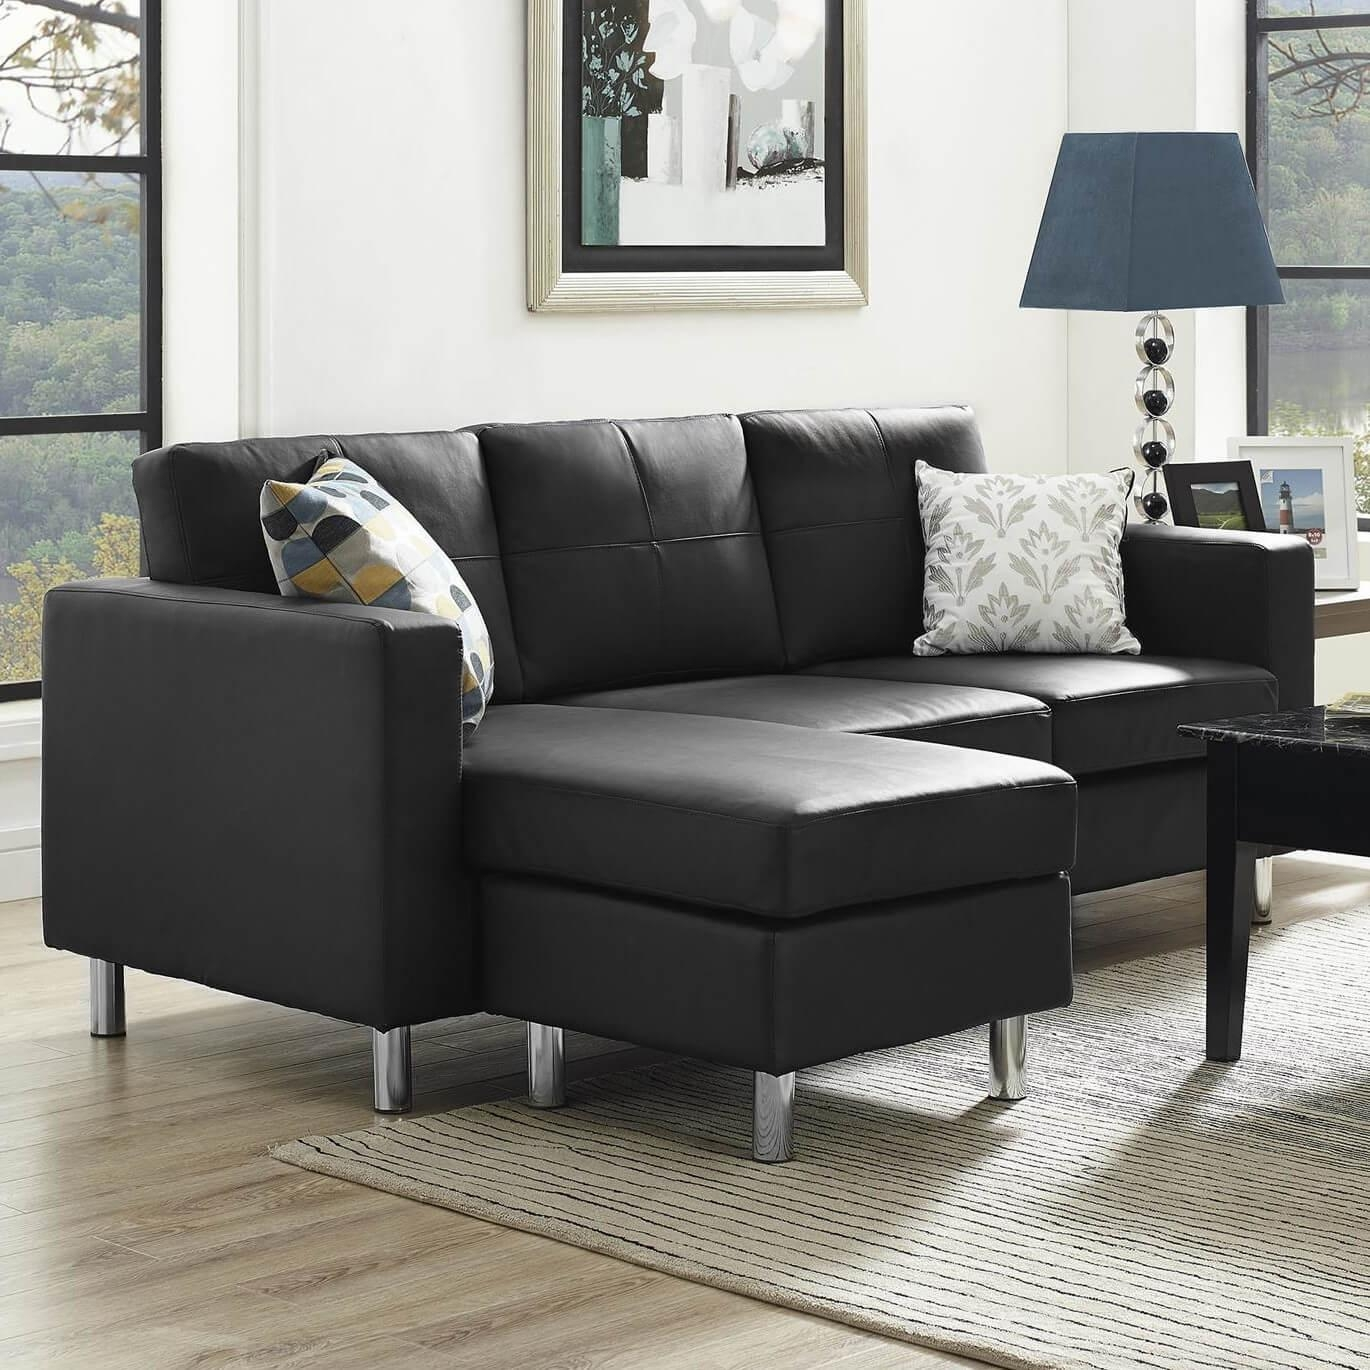 13 Sectional Sofas Under $500 (Several Styles) within Modern Microfiber Sectional Sofa